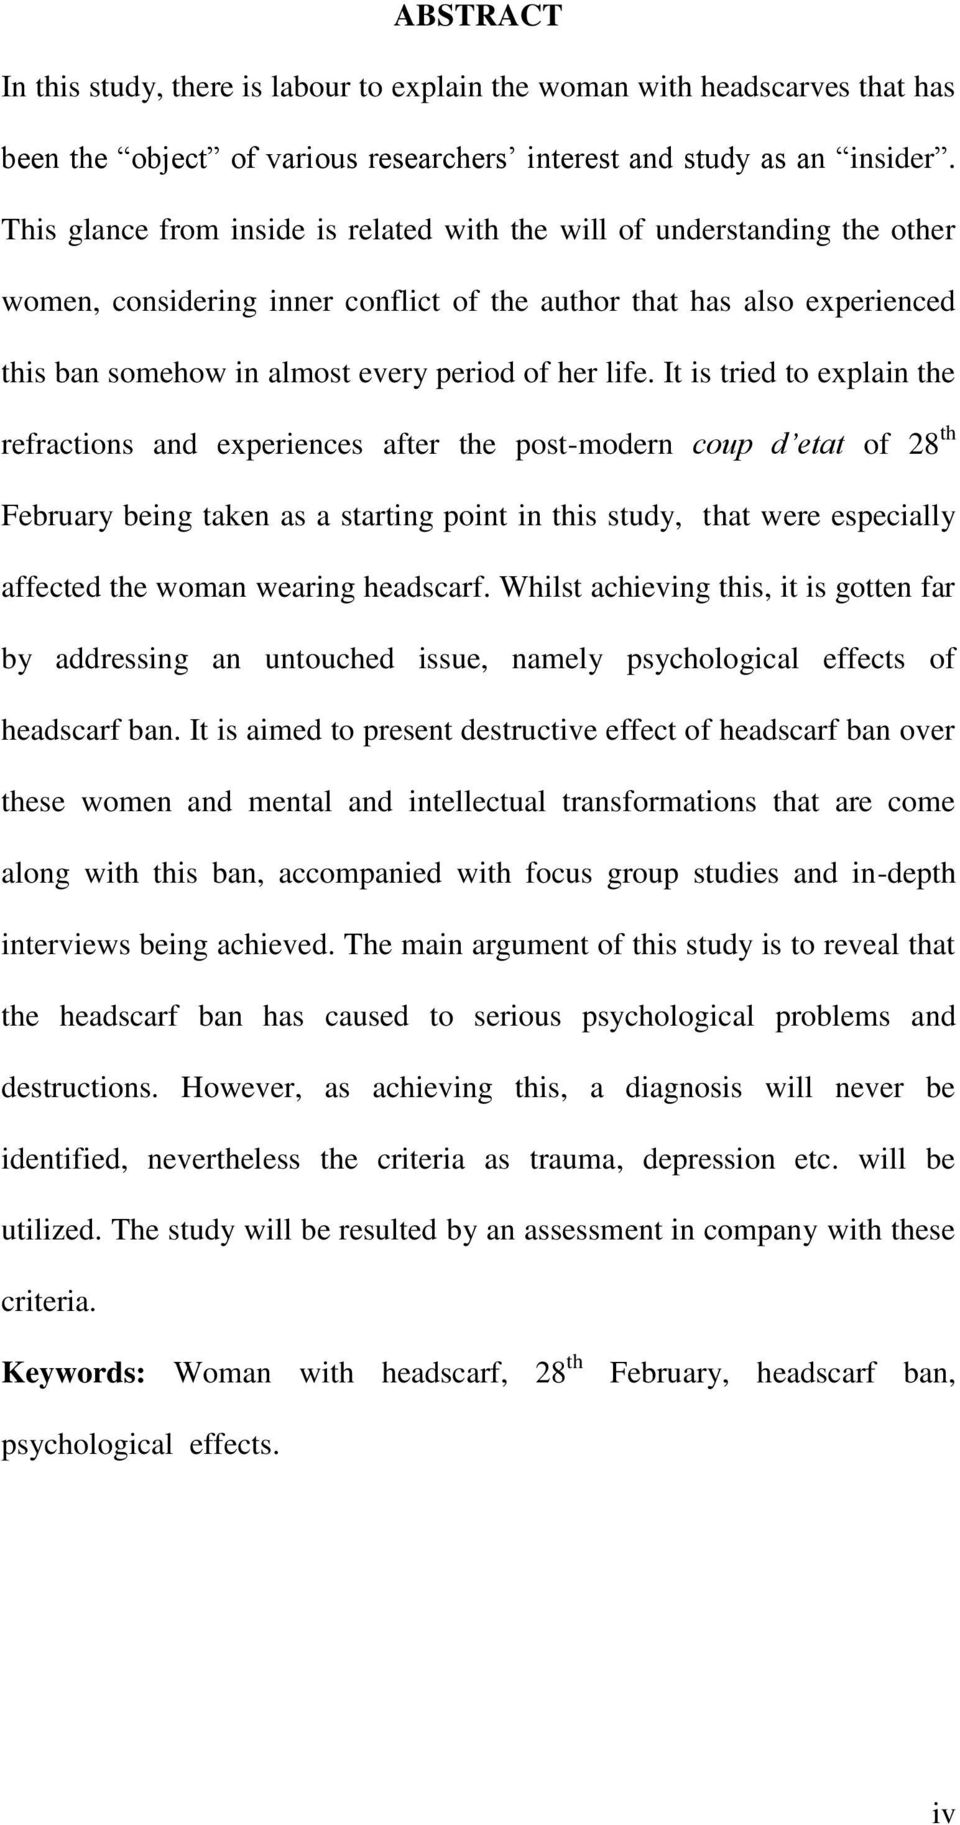 life. It is tried to explain the refractions and experiences after the post-modern coup d etat of 28 th February being taken as a starting point in this study, that were especially affected the woman